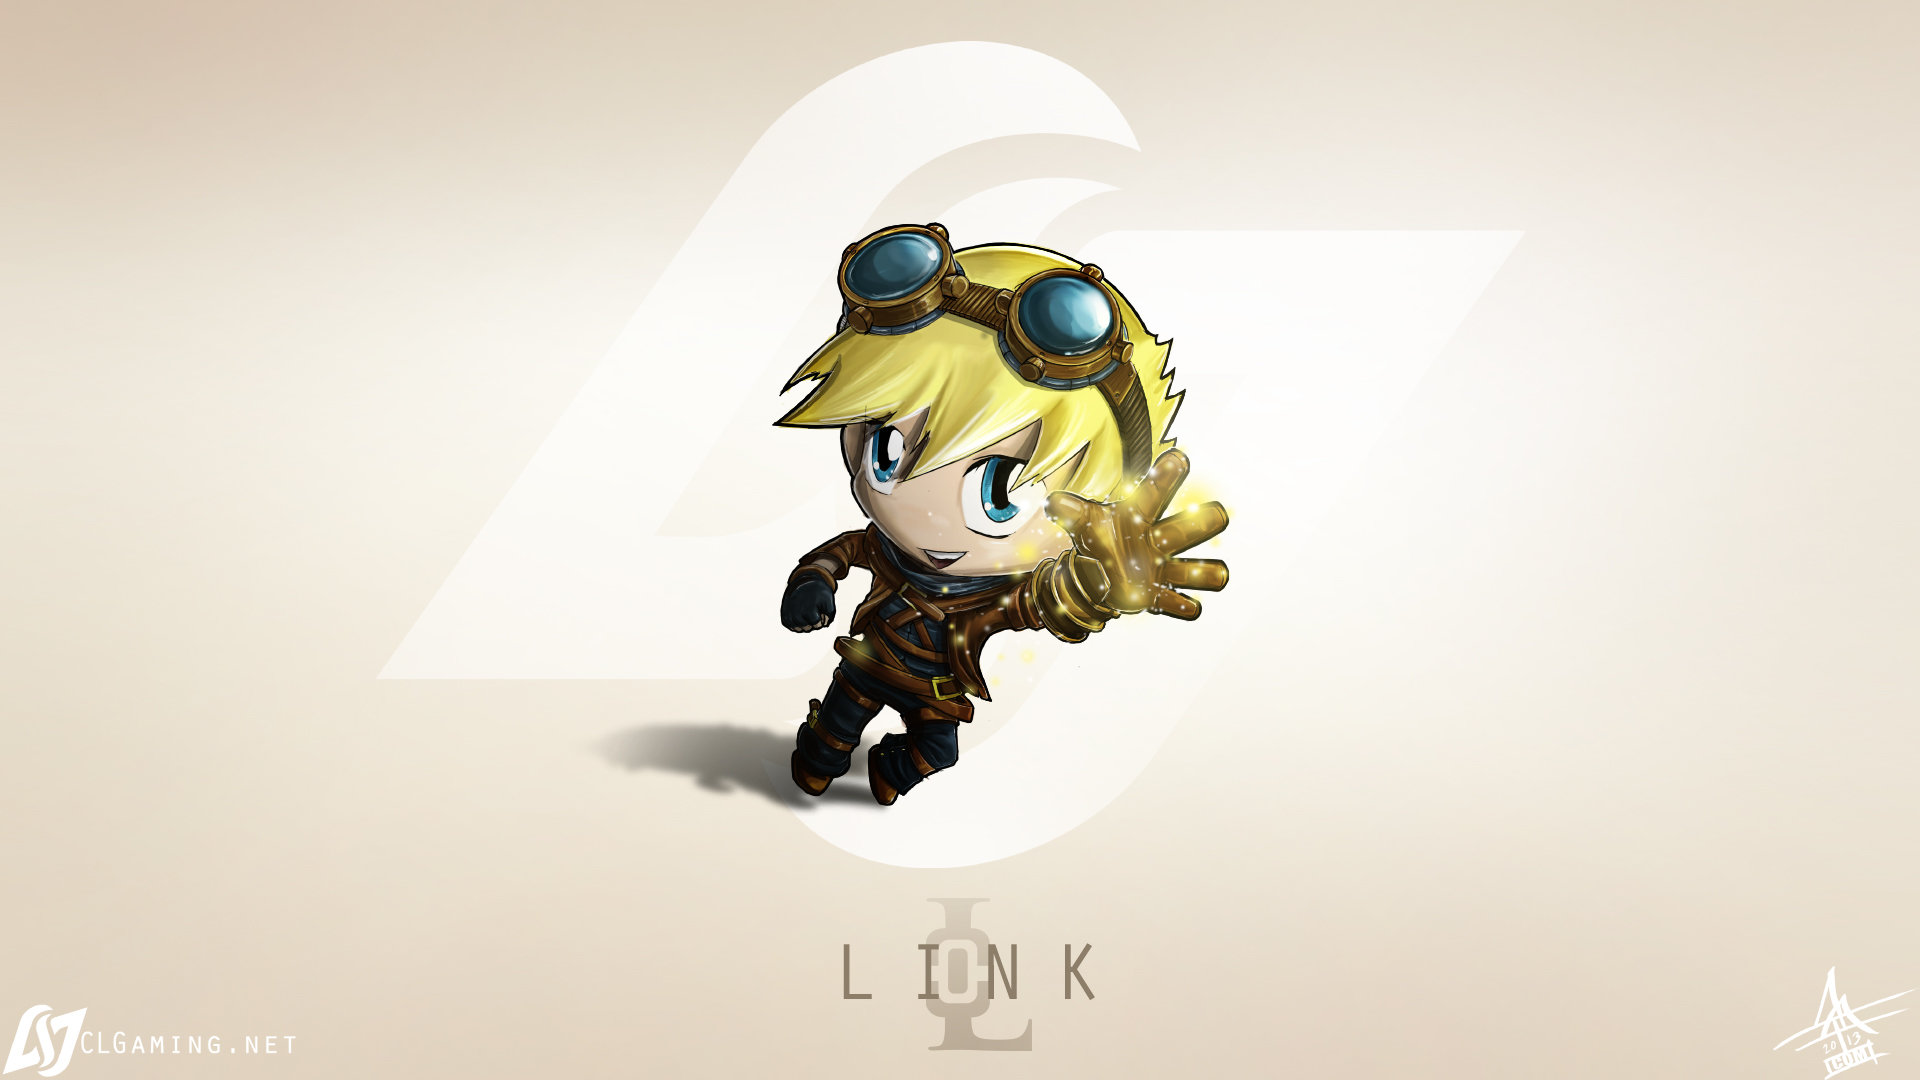 Download full hd 1920x1080 Ezreal (League Of Legends) desktop background ID:173964 for free